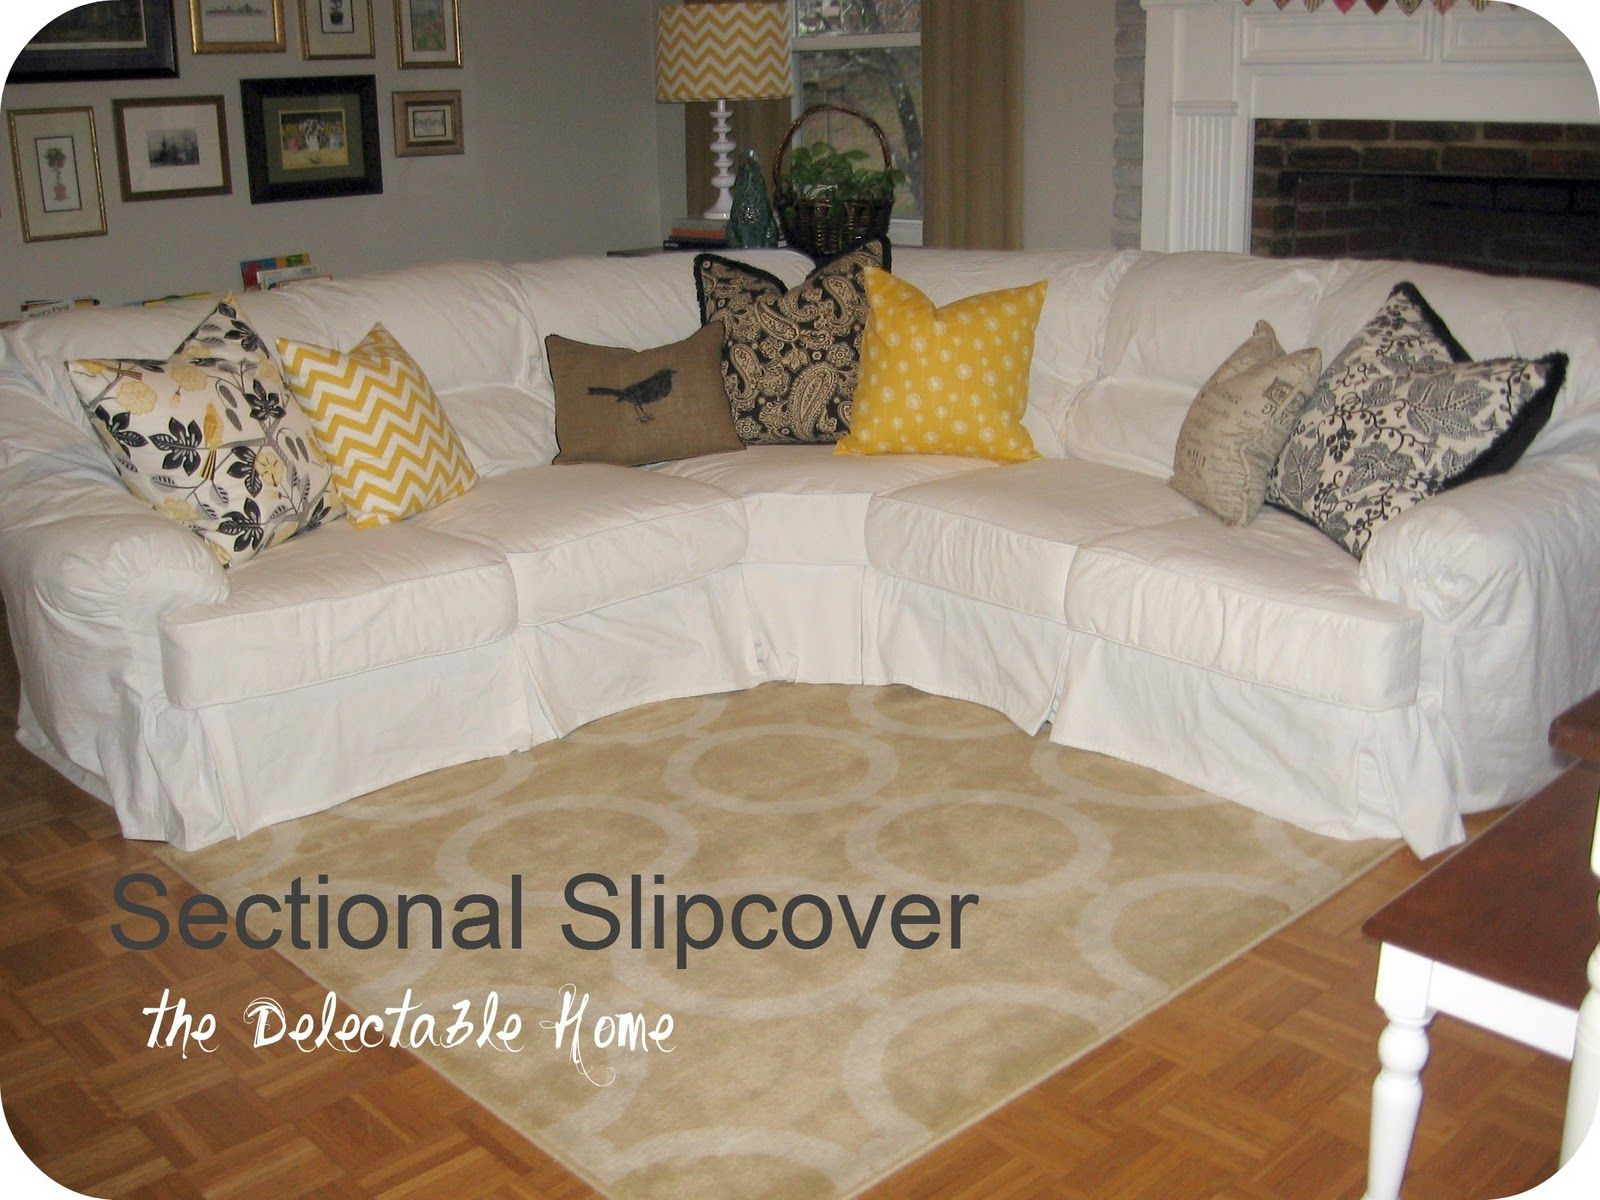 the delectable home impossible sectional slipcover sew what rh pinterest com Sectional Sofa Slipcovers Sectional Sofas with Recliners Slip Covers